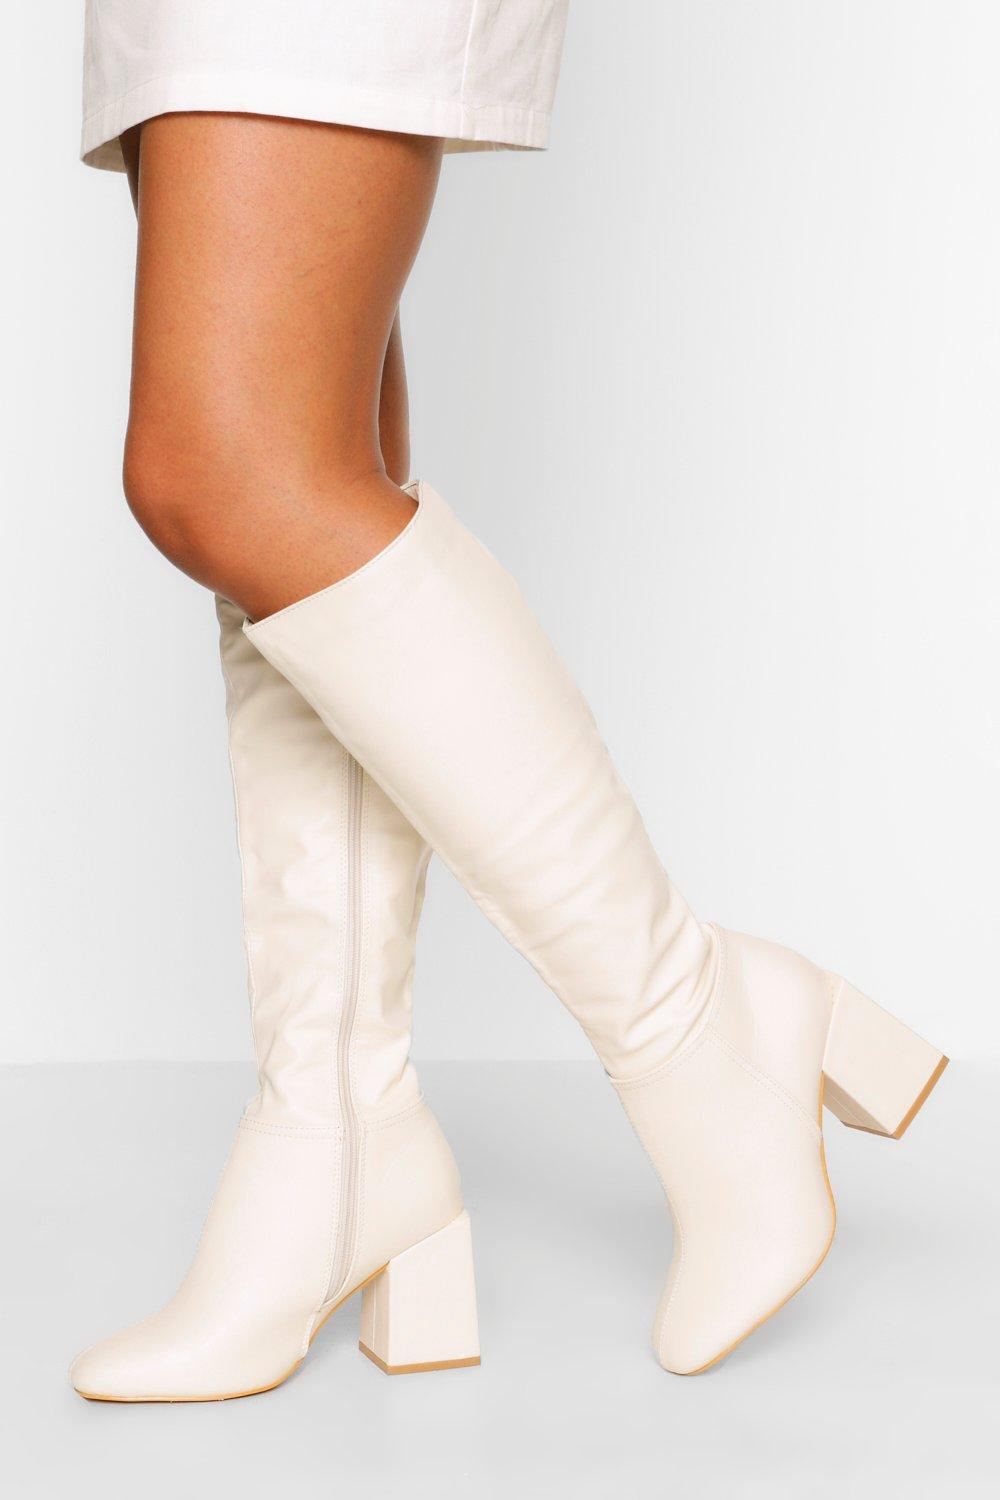 60s Shoes, Boots Womens Wide Fit Block Heel Knee High Boot - White - 10 $45.00 AT vintagedancer.com